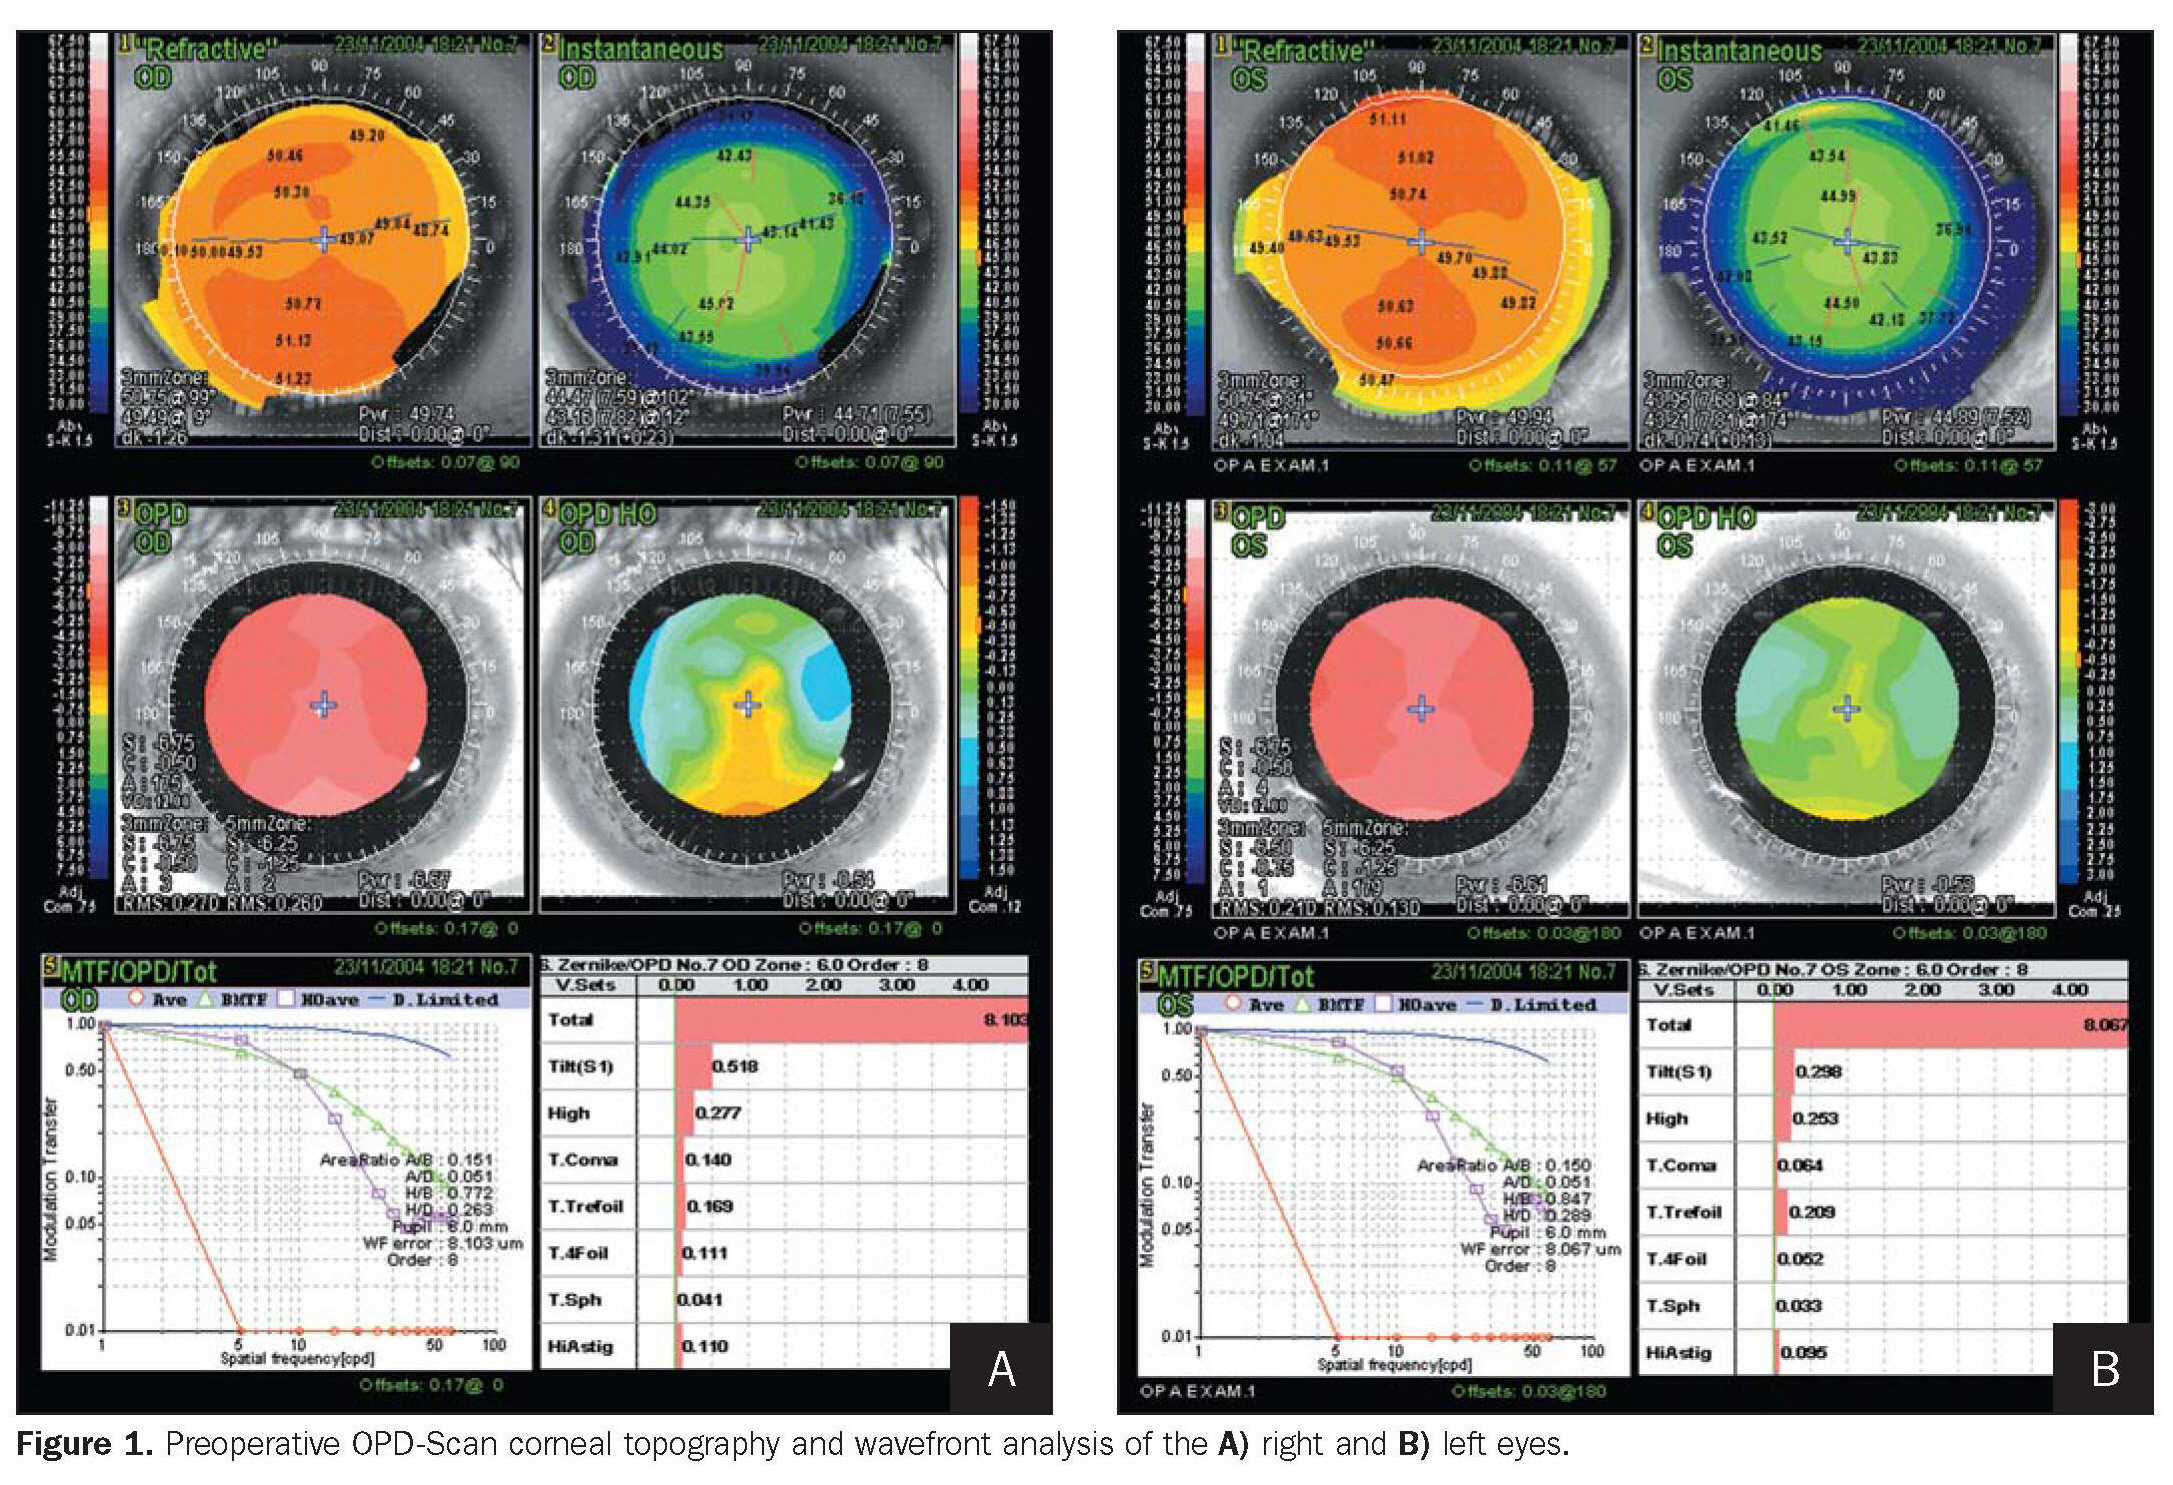 Figure 1. Preoperative OPD-Scan corneal topography and wavefront analysis of the A) right and B) left eyes.